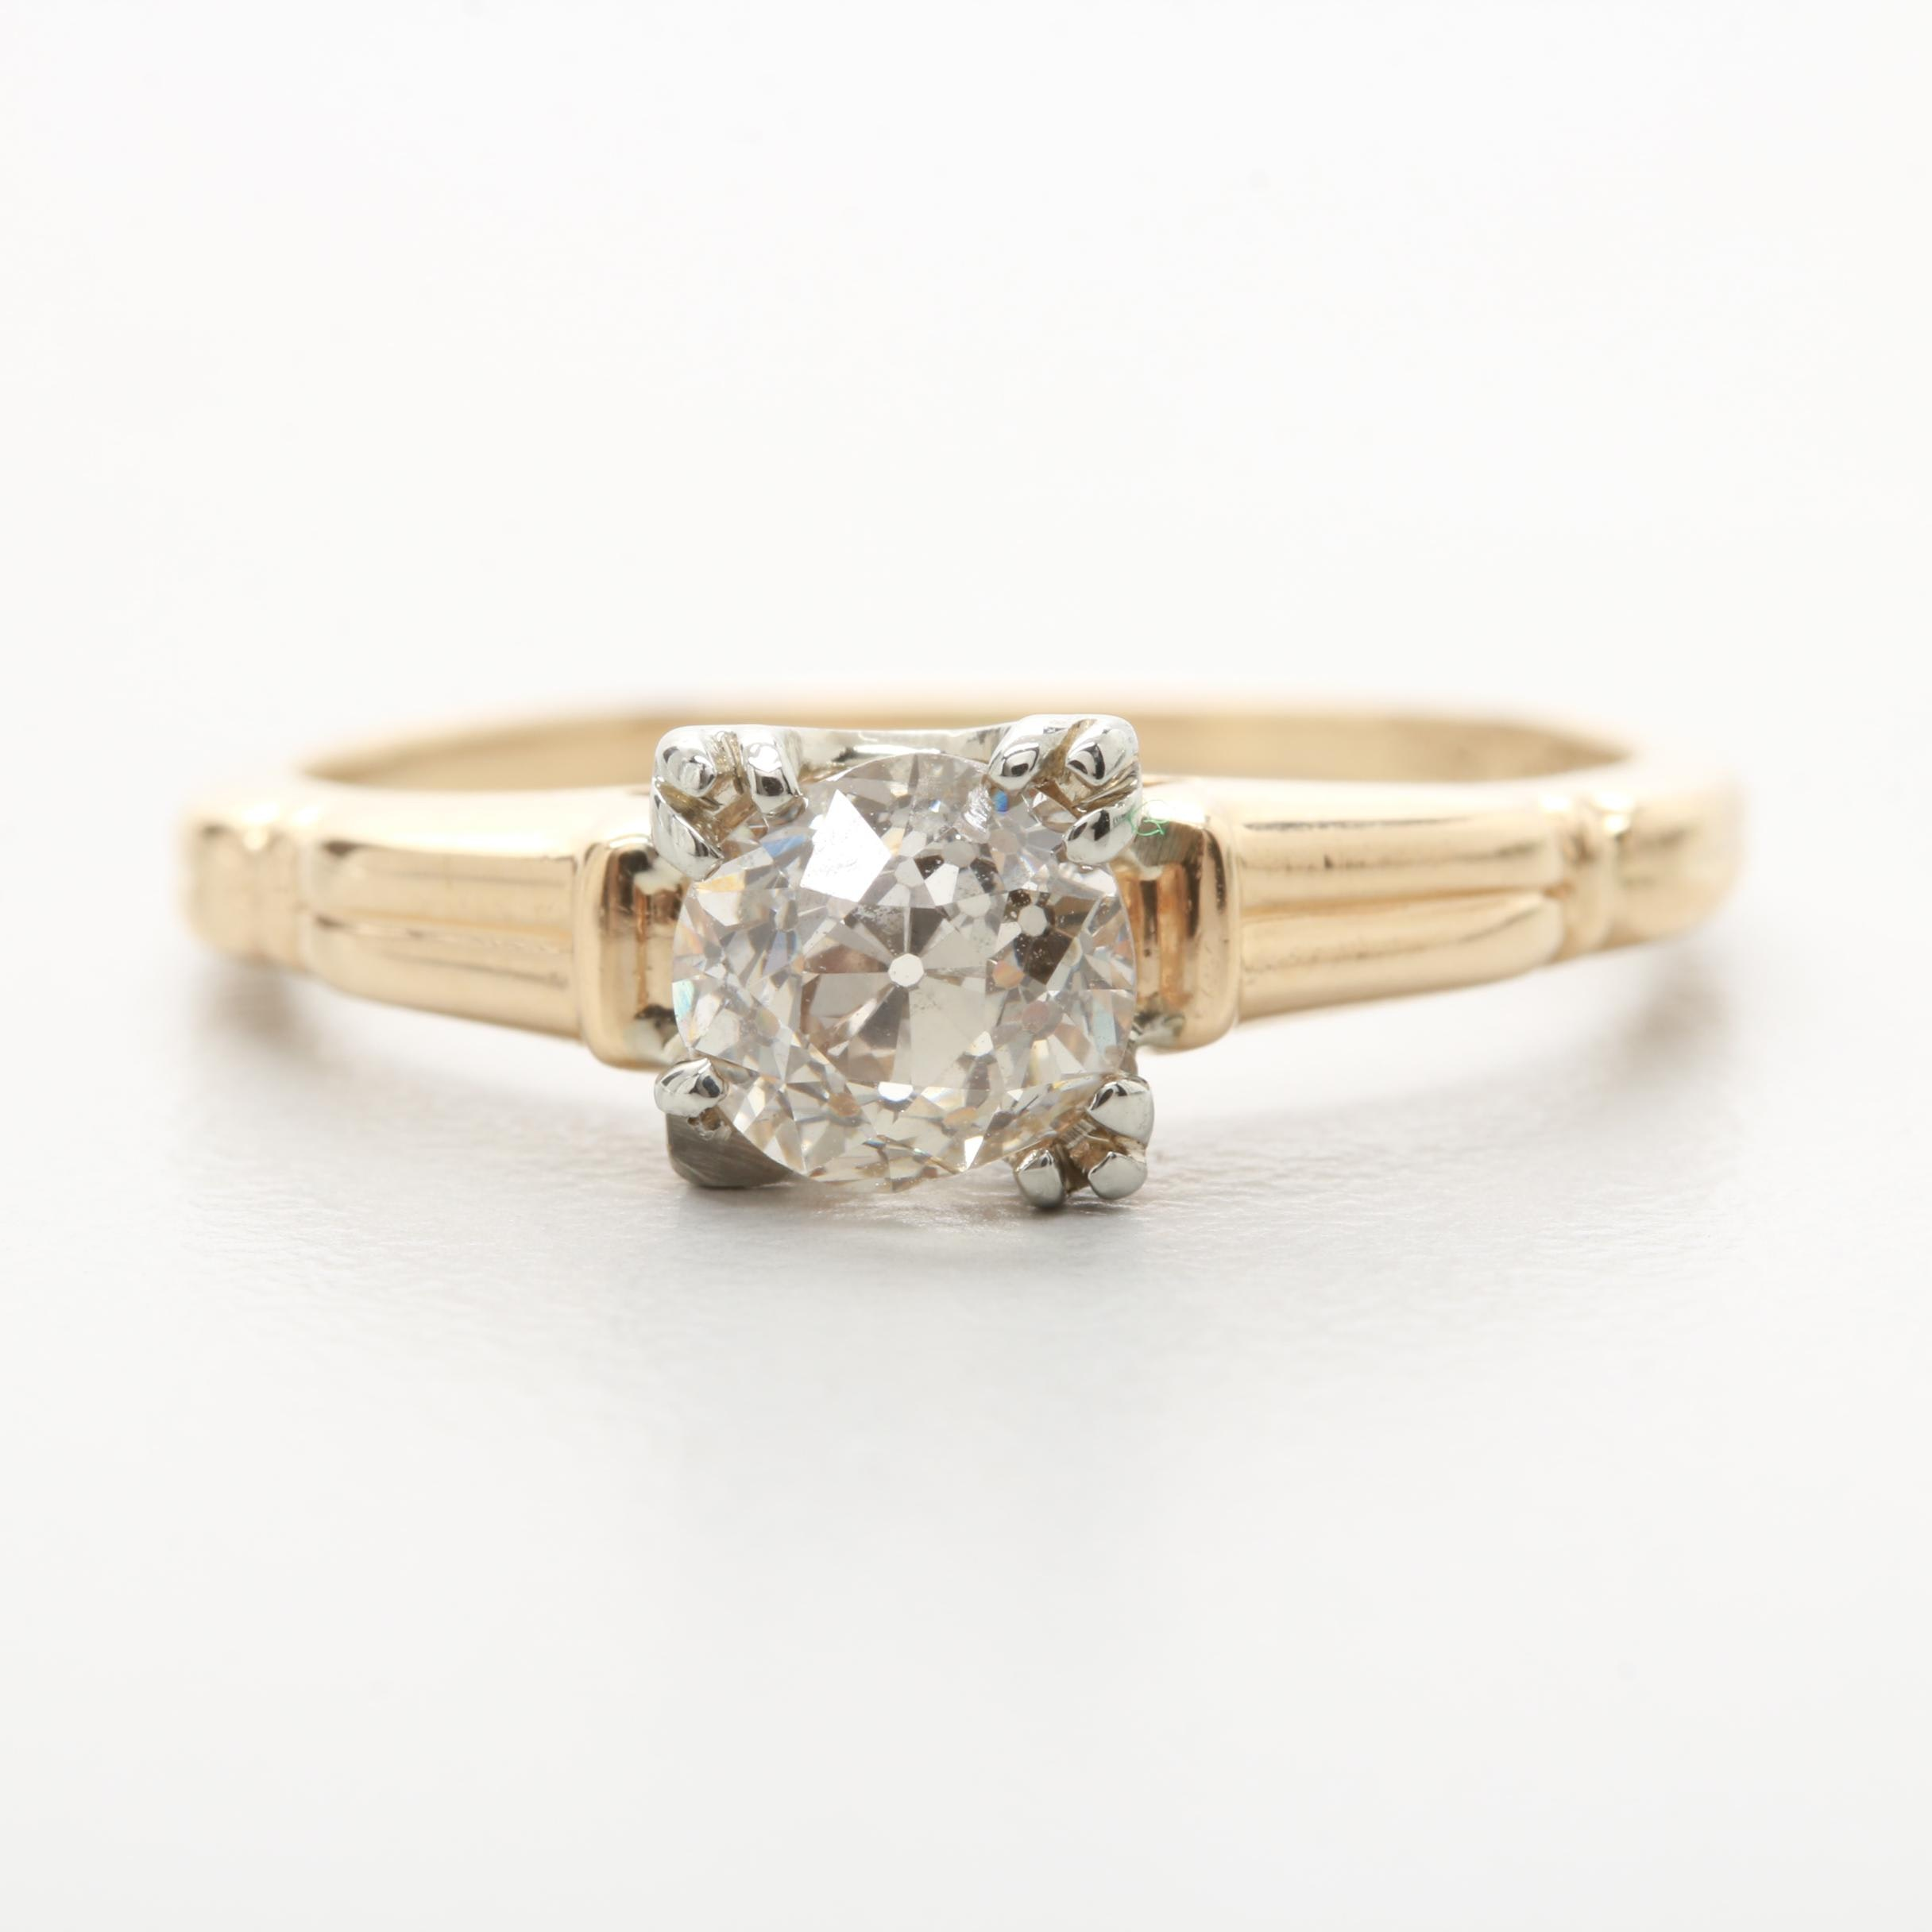 14K Yellow Gold Diamond Ring with 18K White Gold Accents